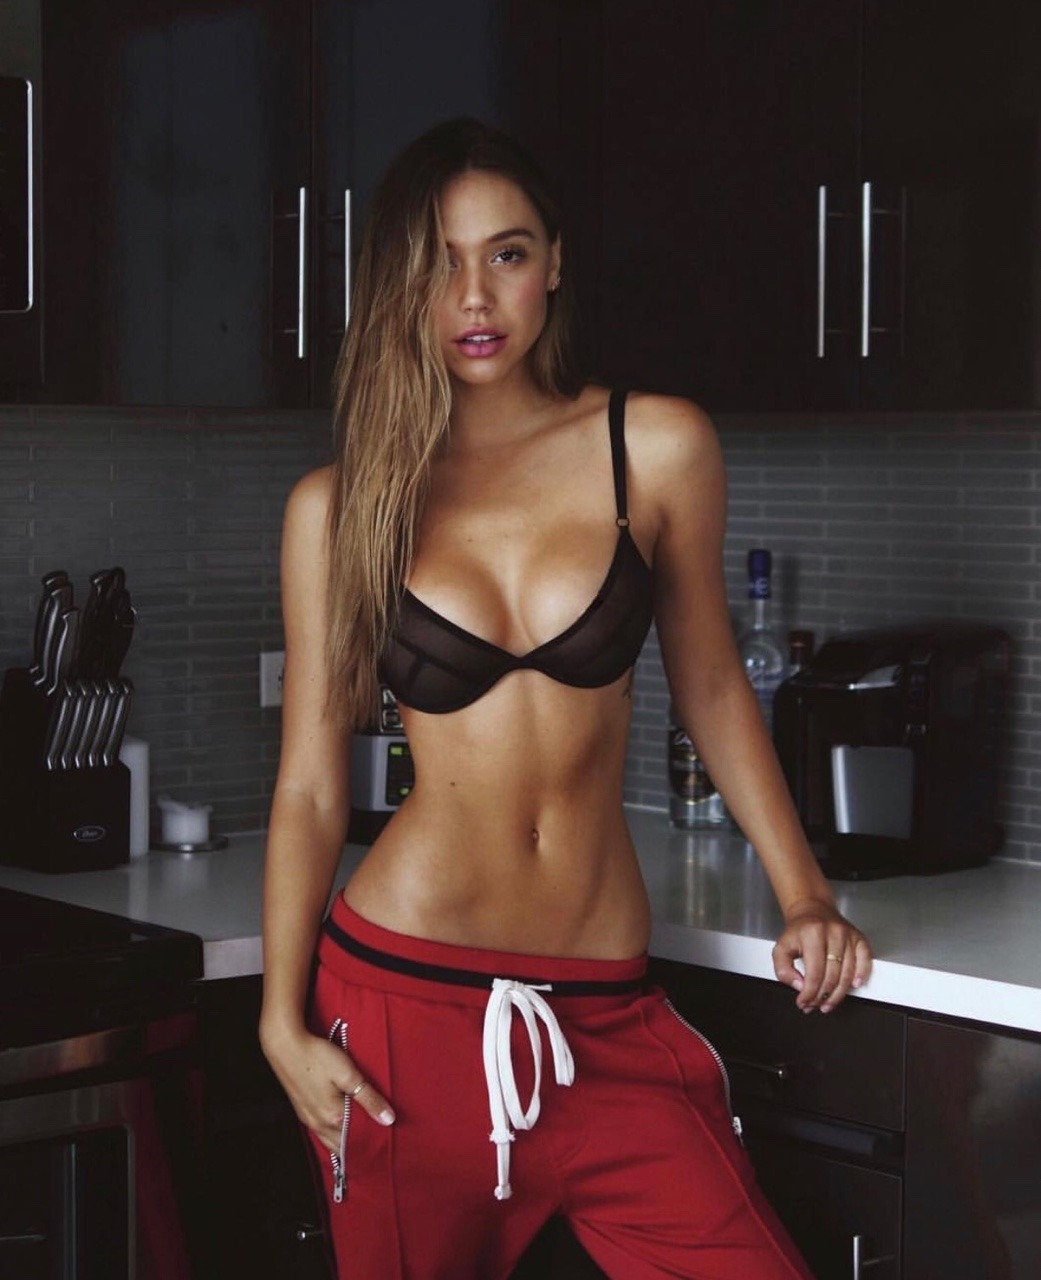 33 Hottest Alexis Ren Pictures Will Make You Hot Under The